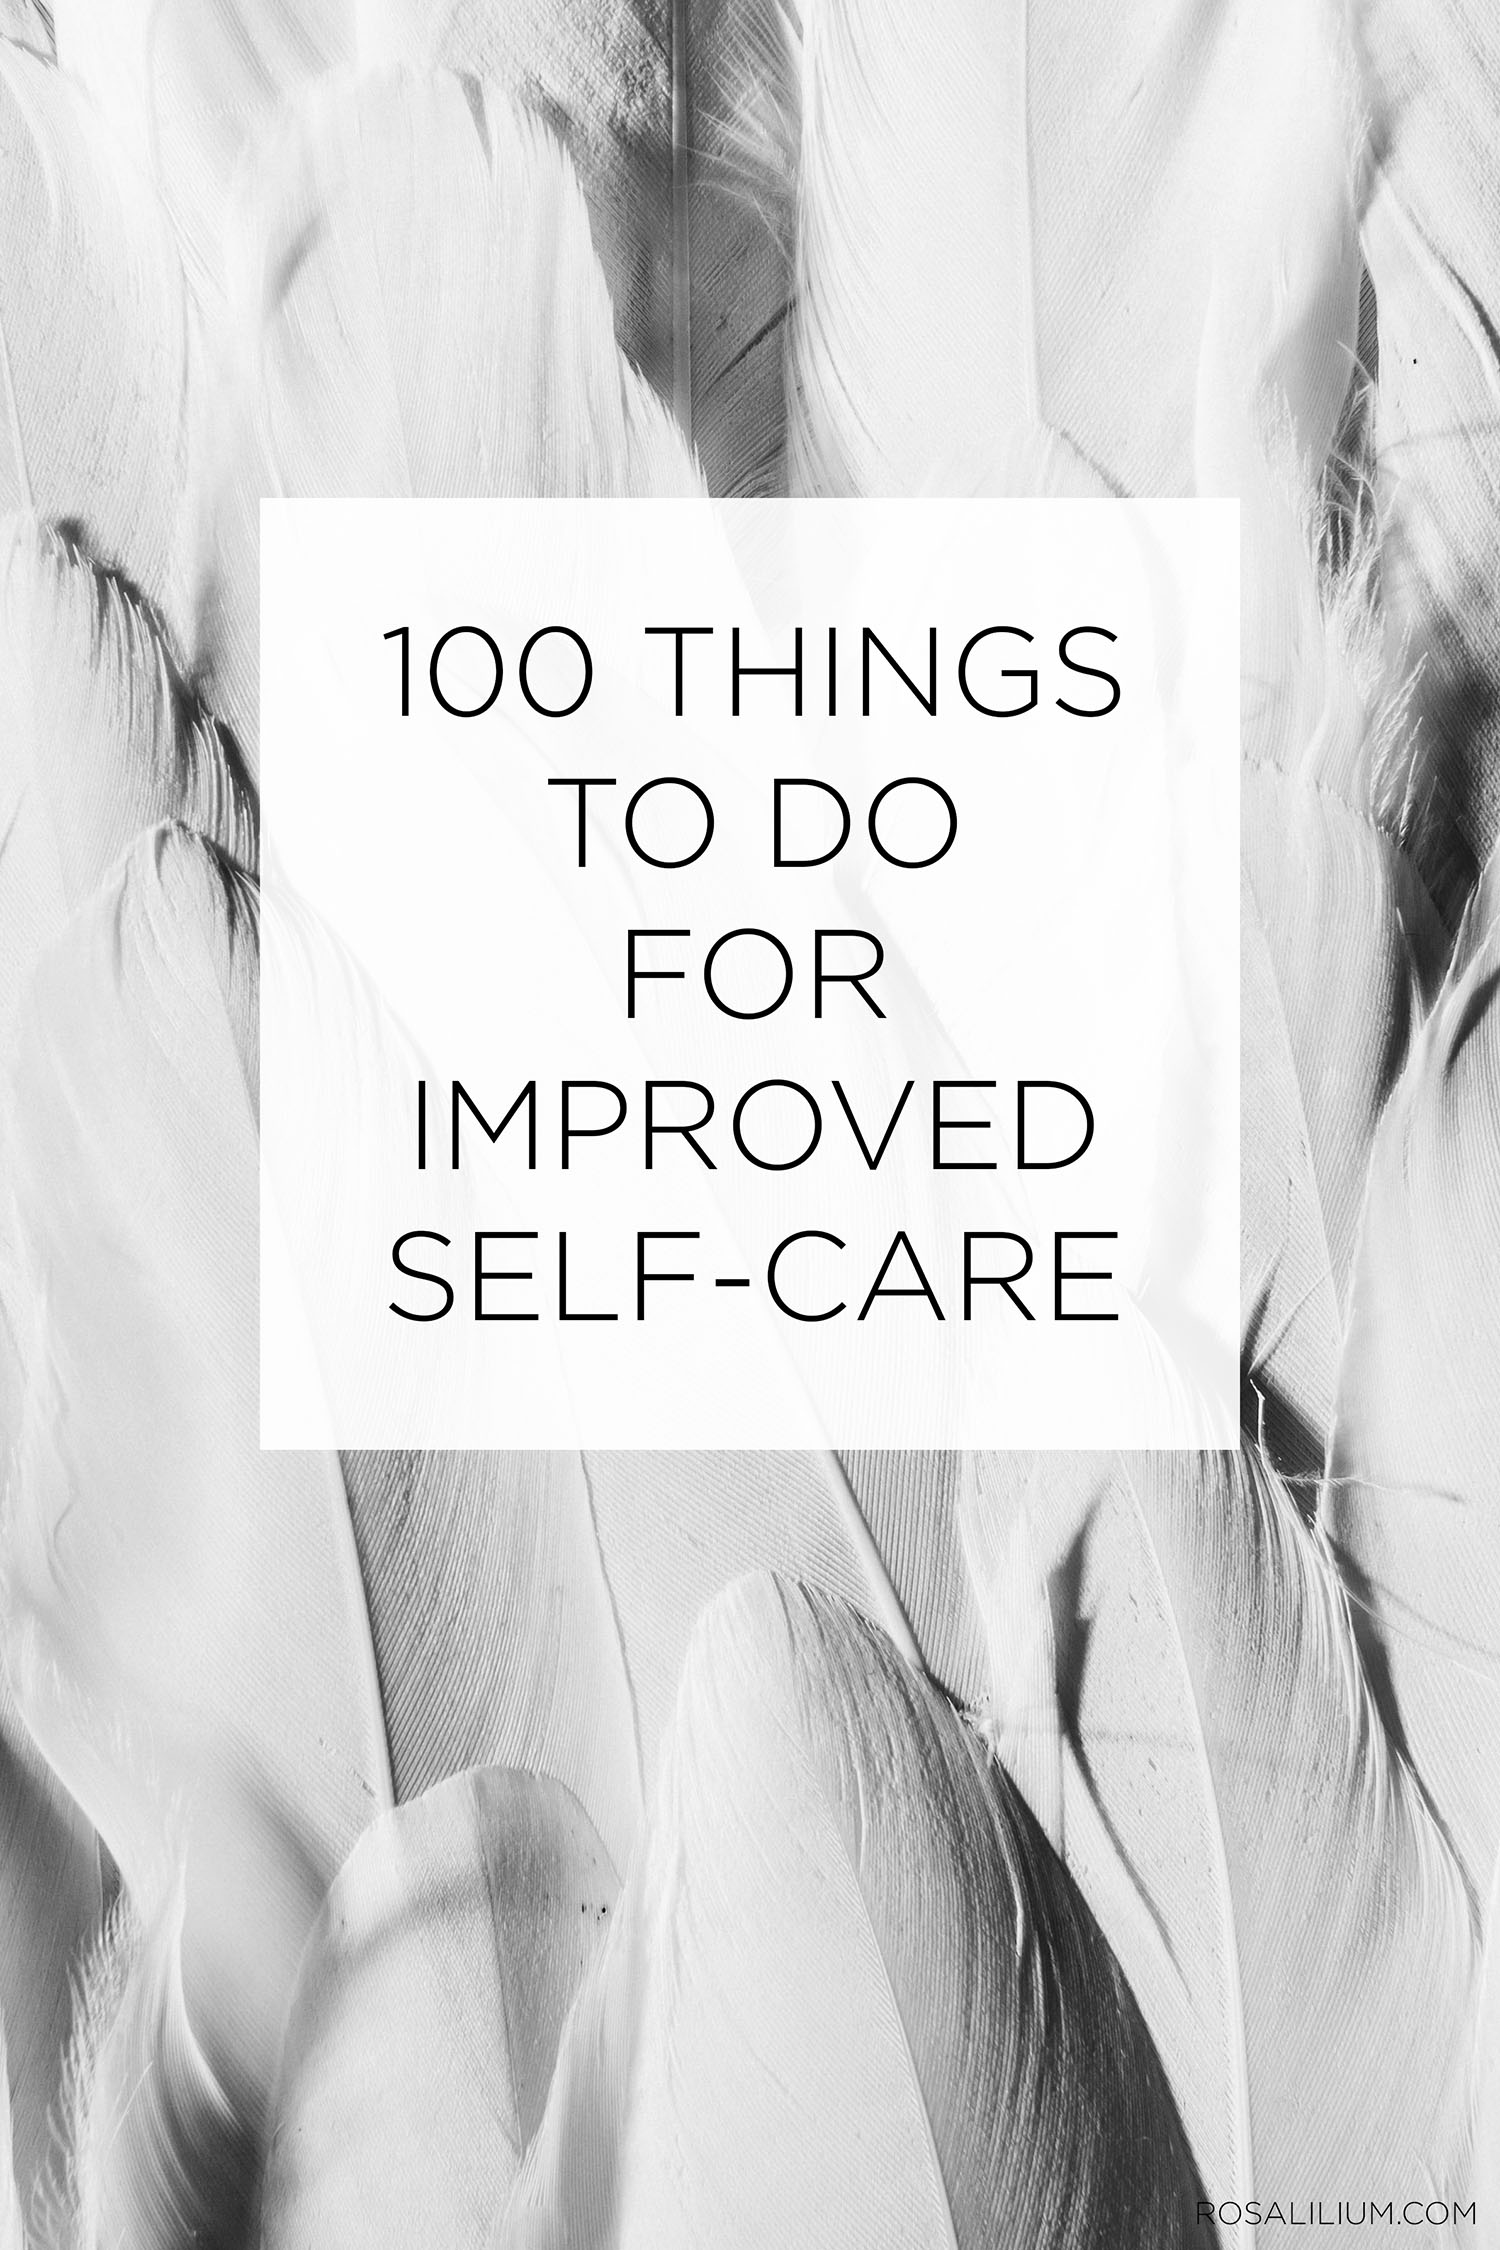 100-things-to-do-for-improved-self-care